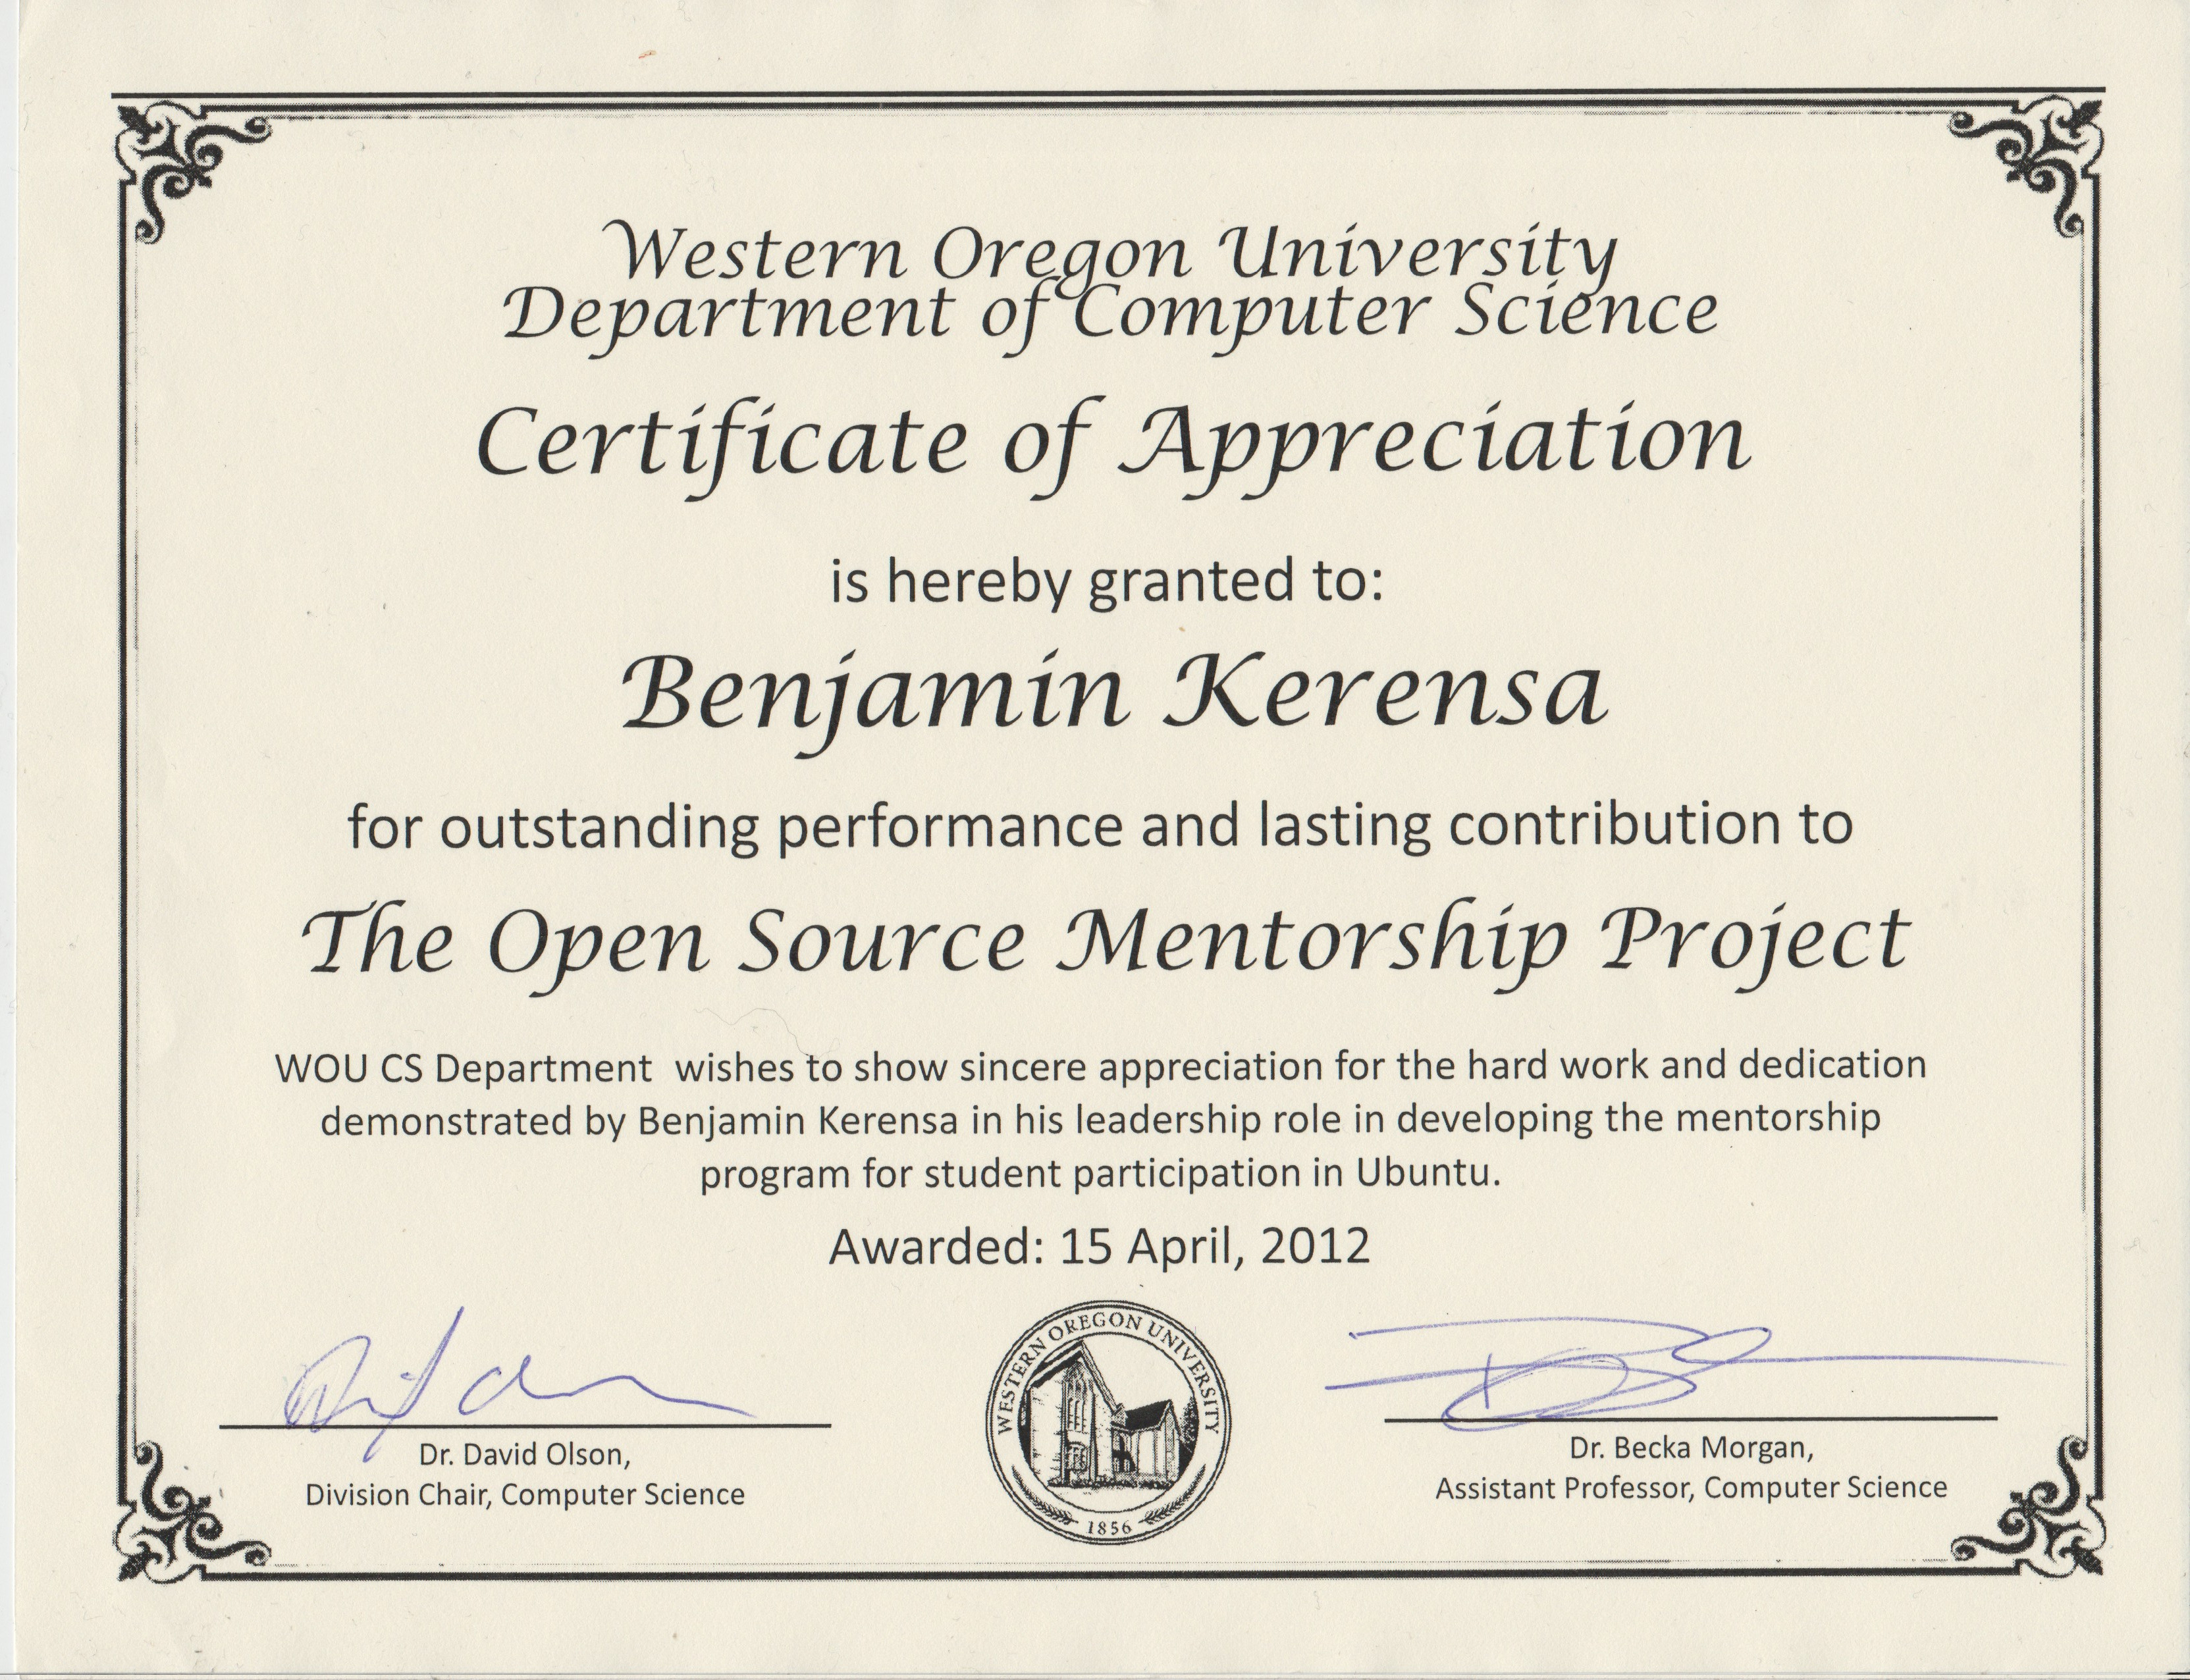 Western Oregon University Computer Science Certificate of